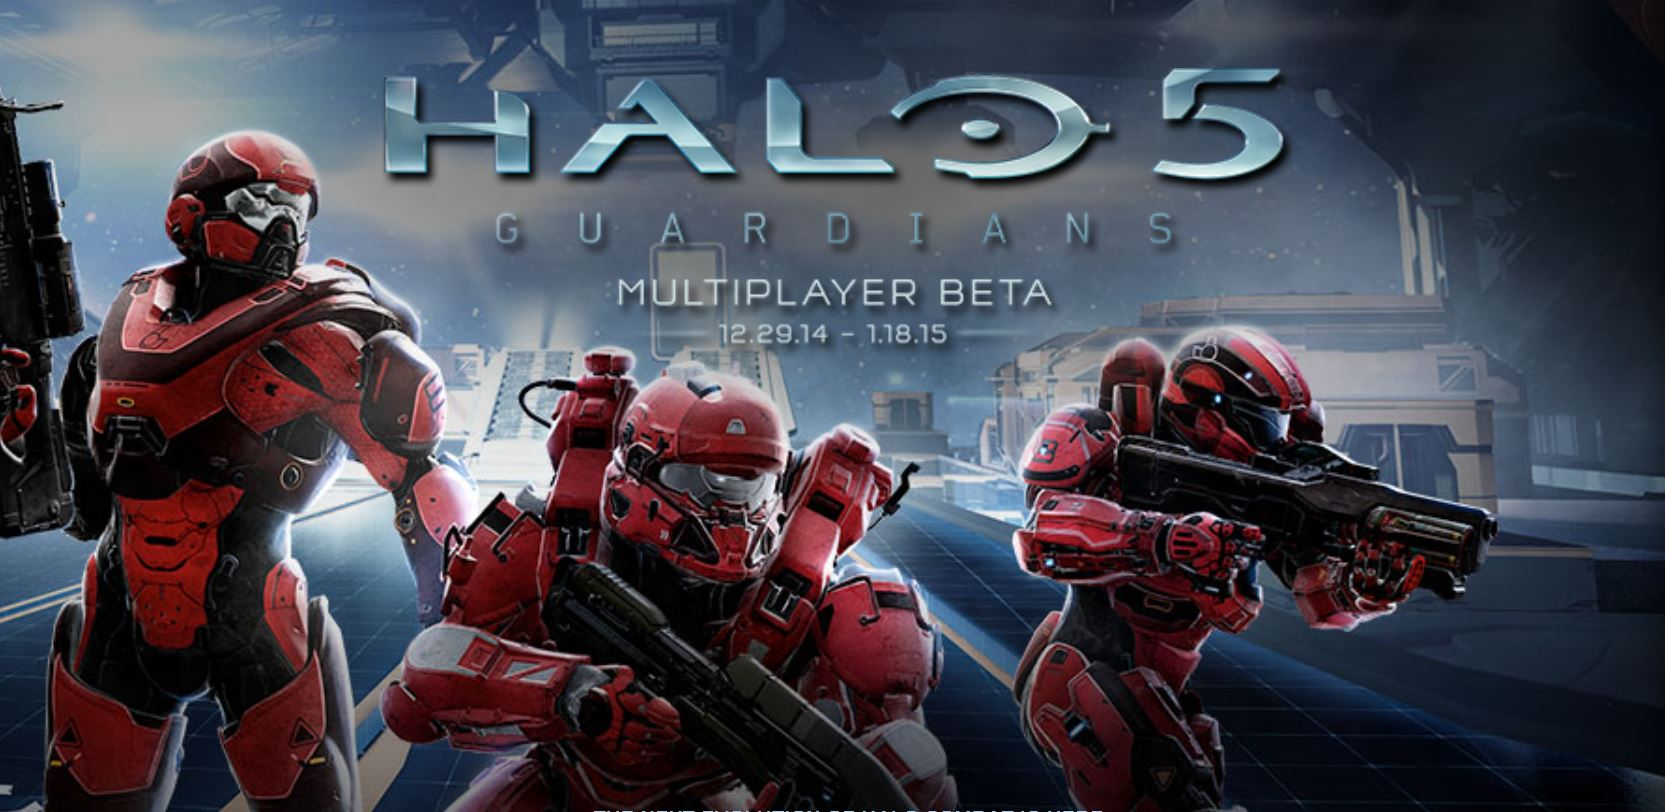 Halo 5: Guardians Multiplayer Beta Officially Launched - MSPoweruser